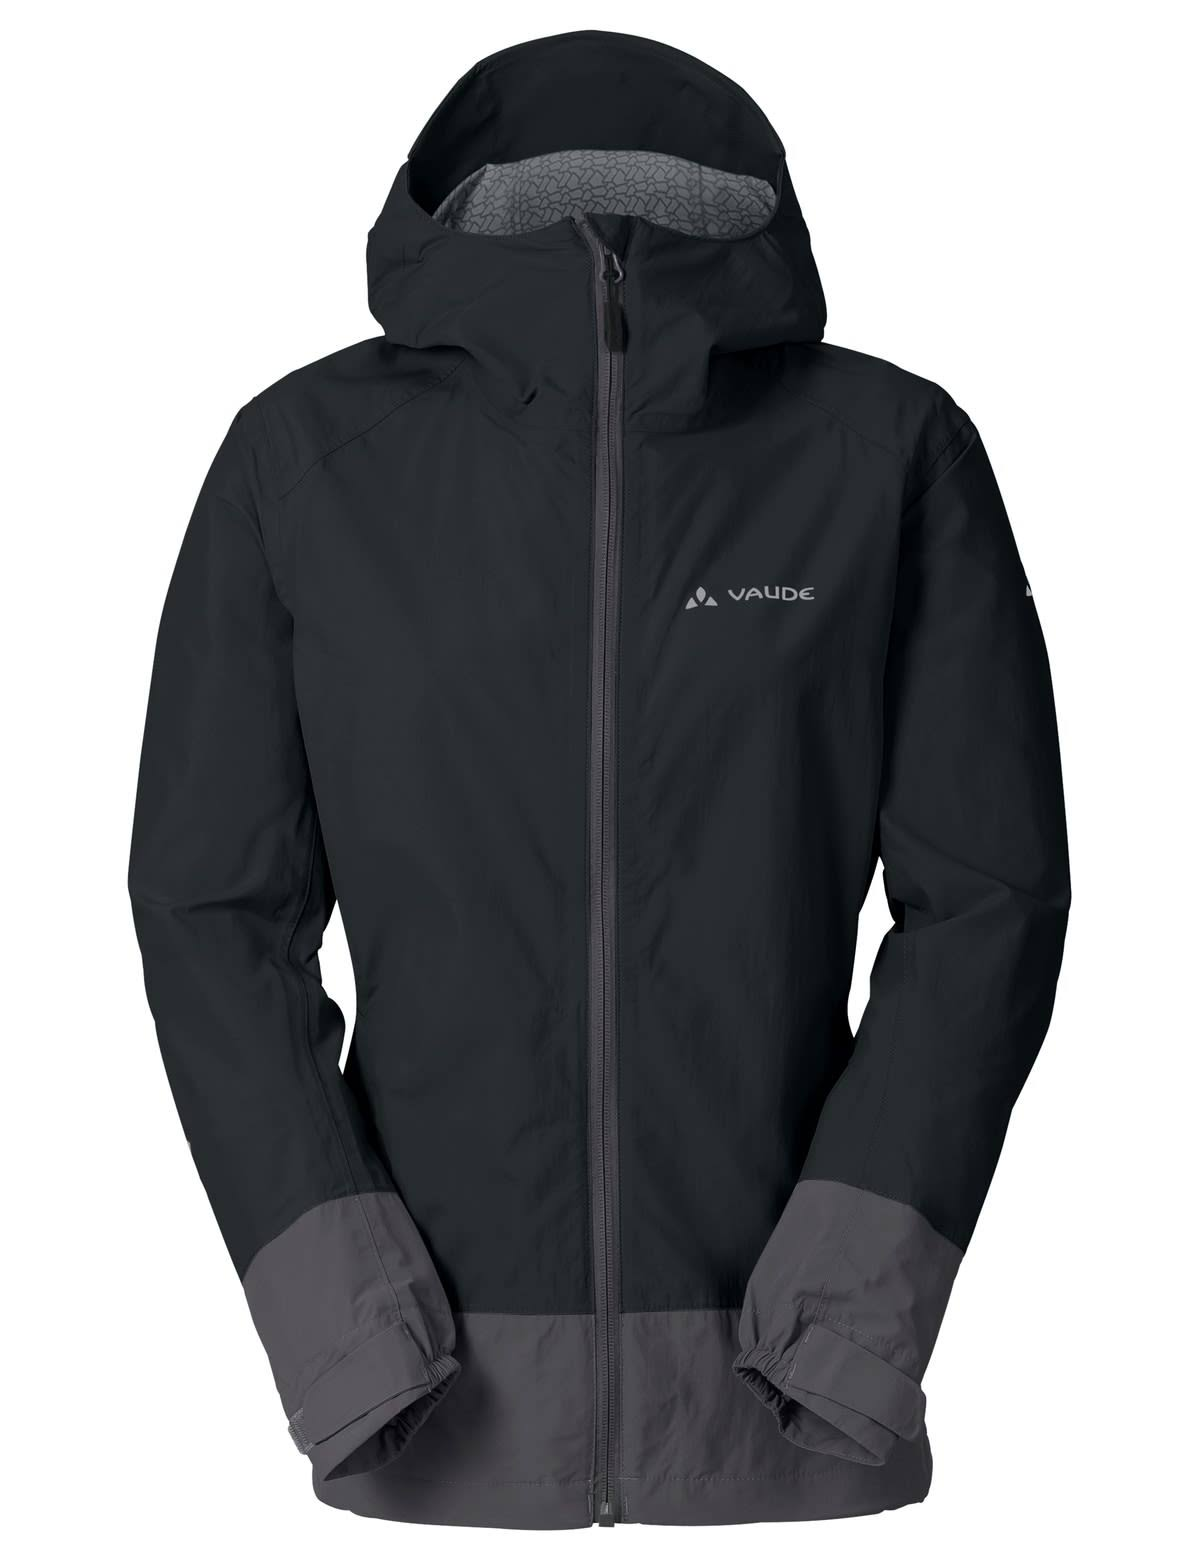 Negro tex Mujeres Jacket Gore Wear C3 Para S Gore Active xqROwY8qt